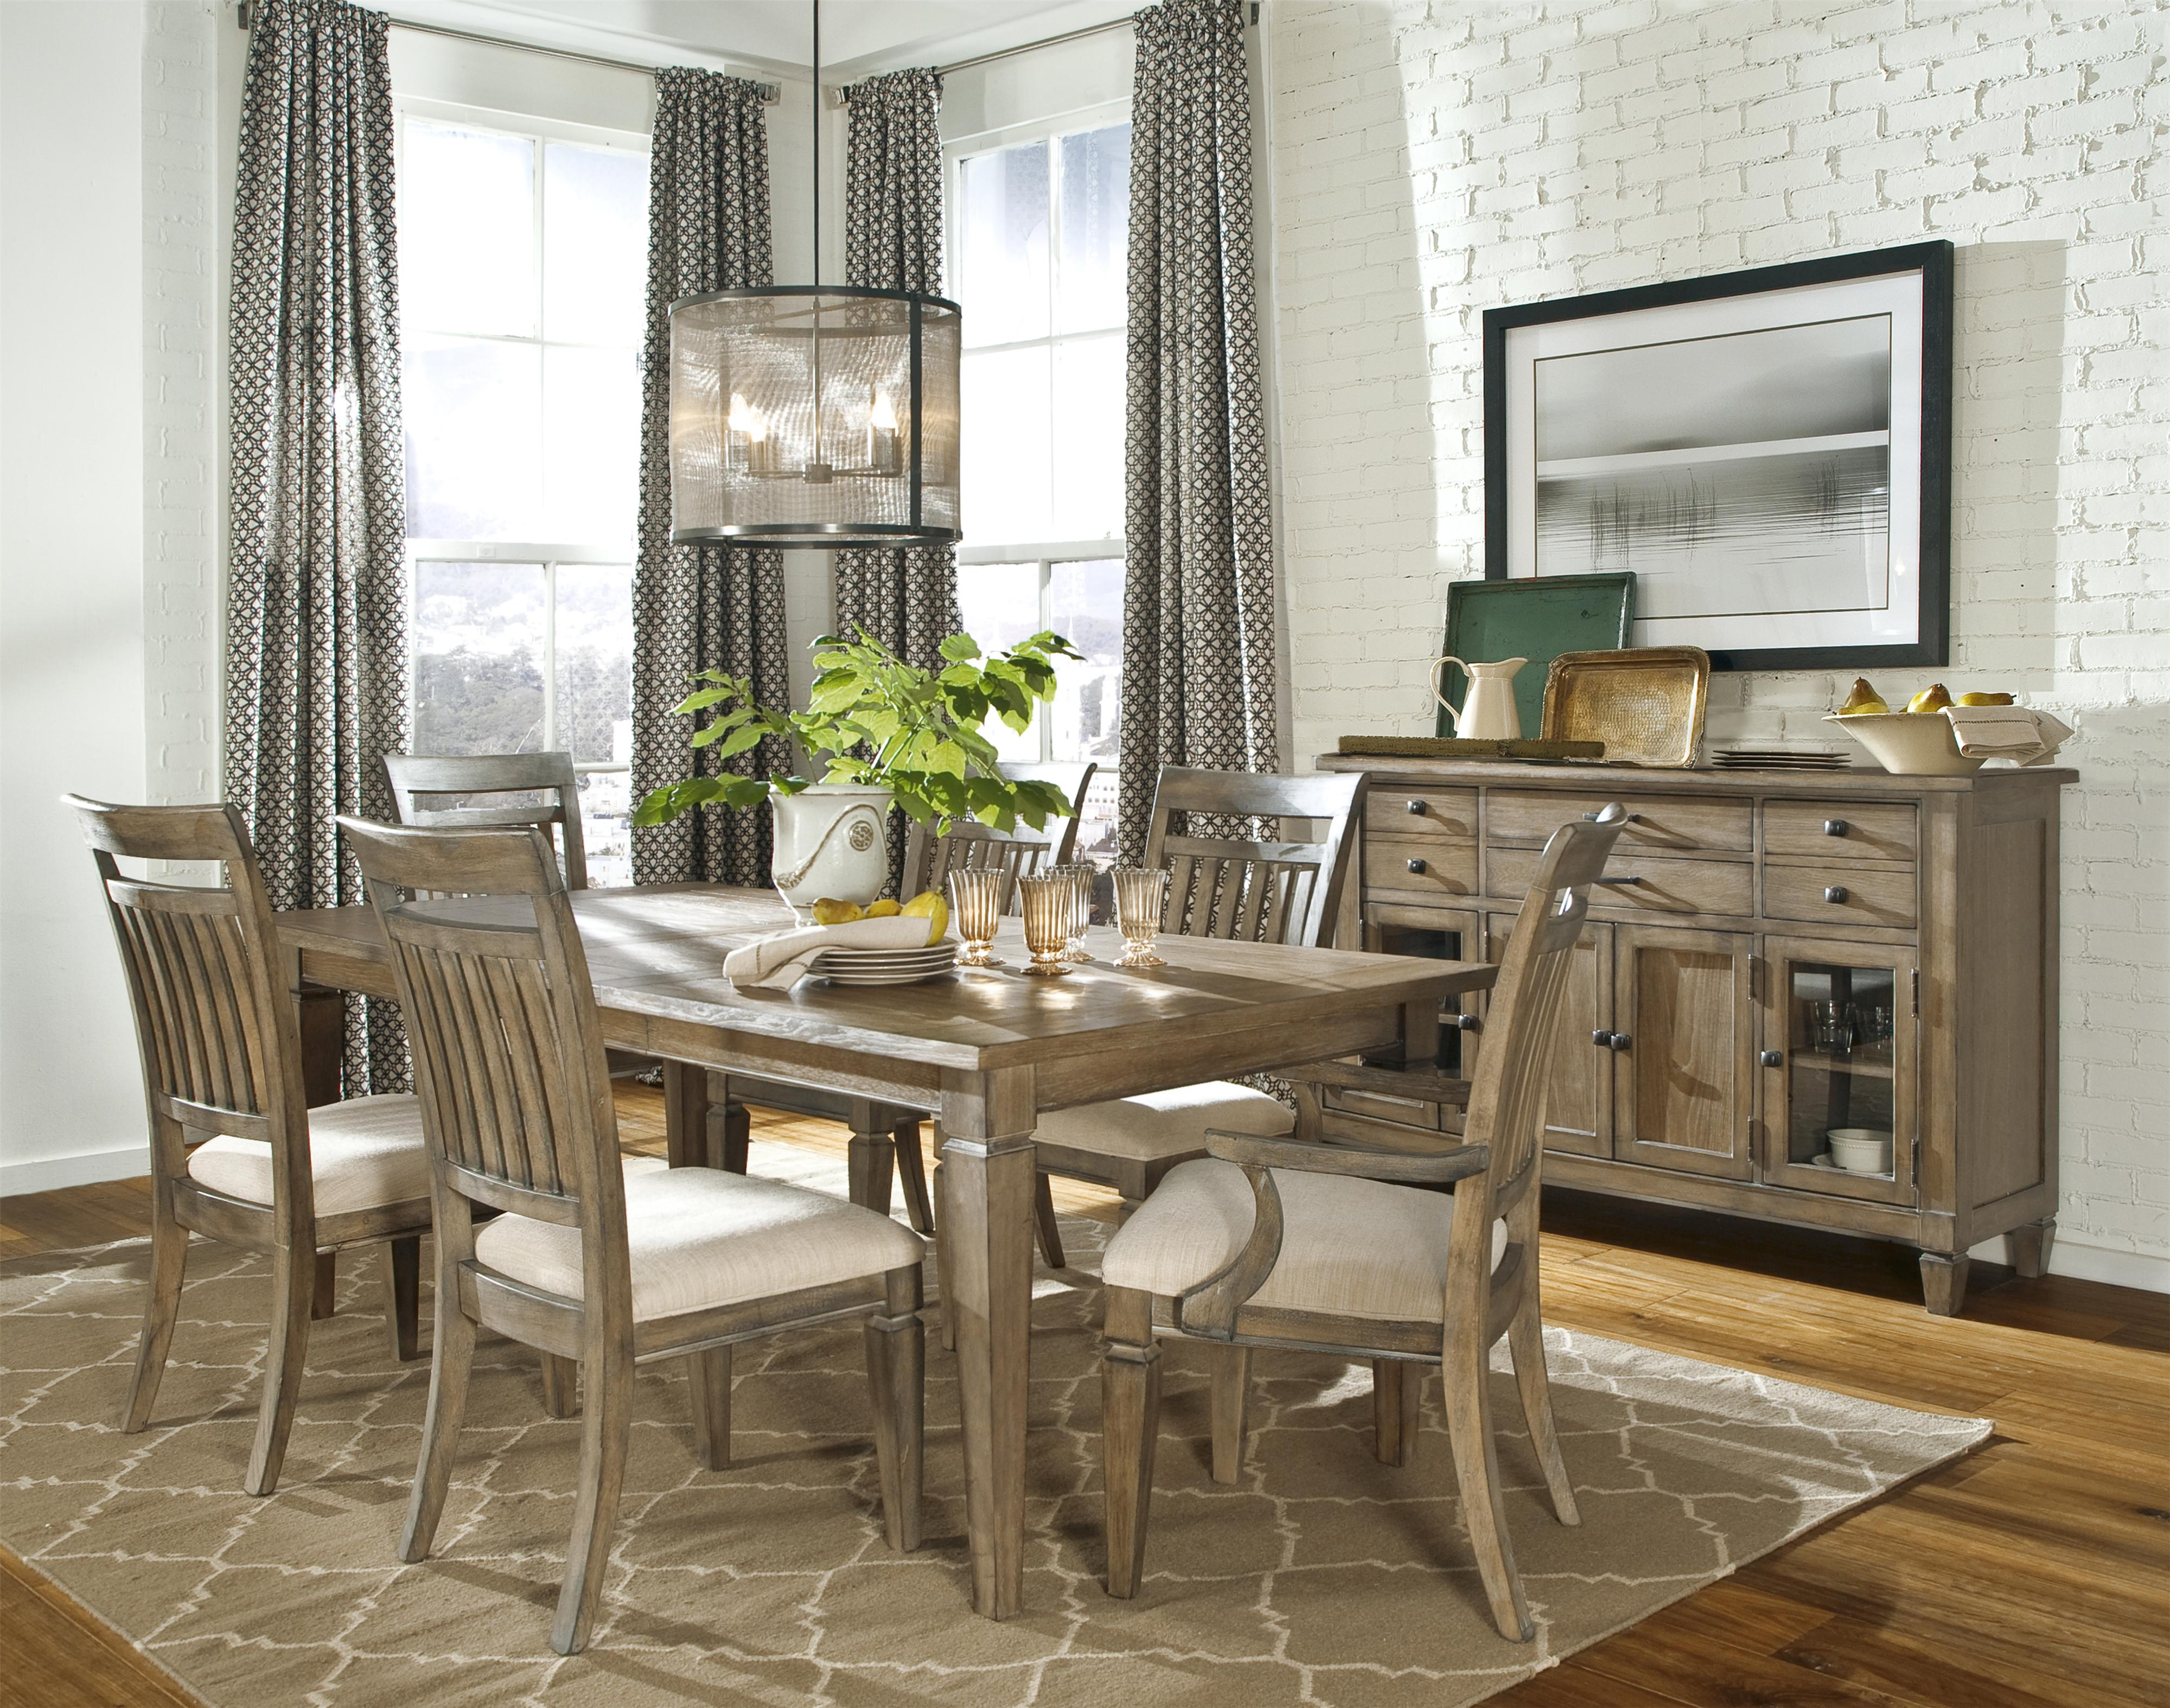 Furniture Village Dining Sets legacy classic brownstone village 7-piece dining set with leg